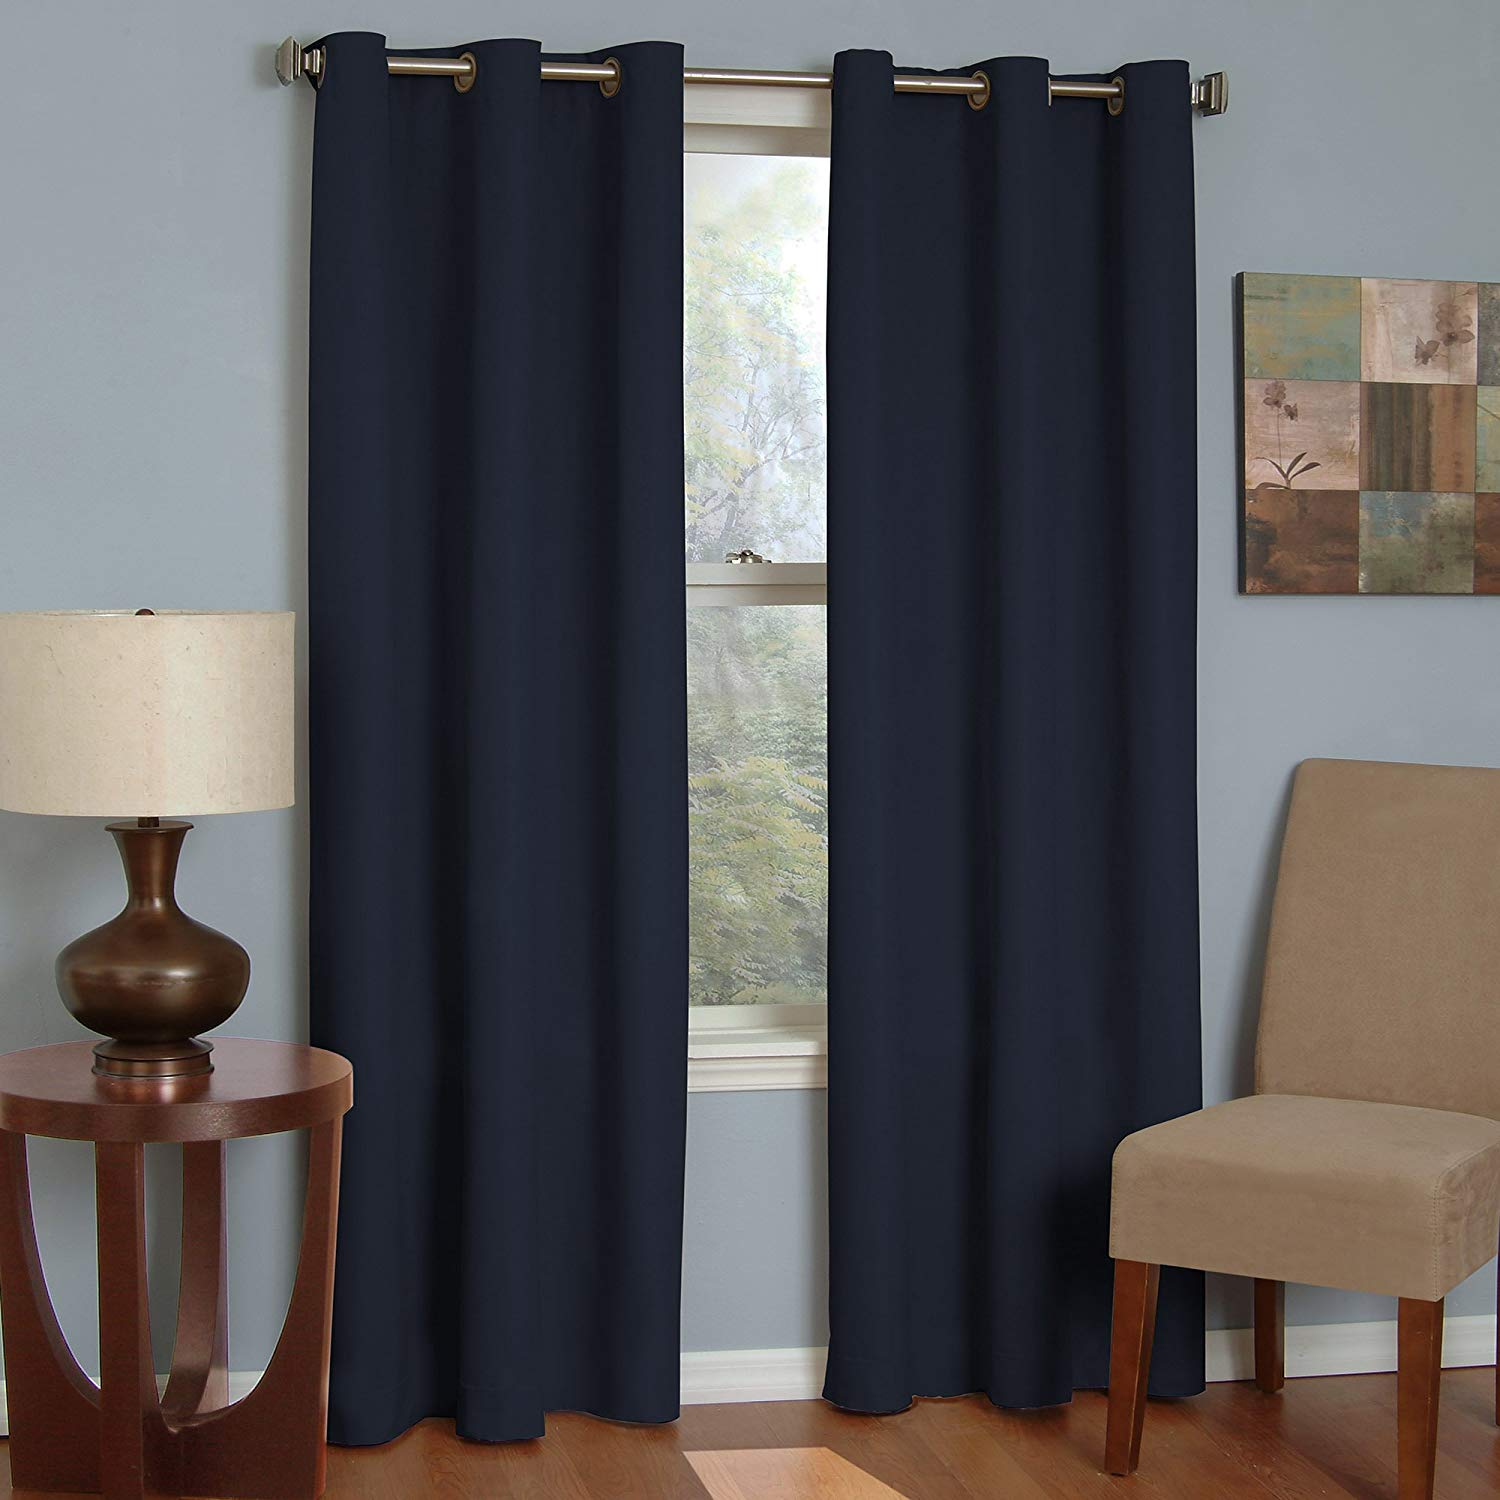 45 Inch Blackout Curtains The 5 Best Blackout Curtains According To Reviewers Bob Vila